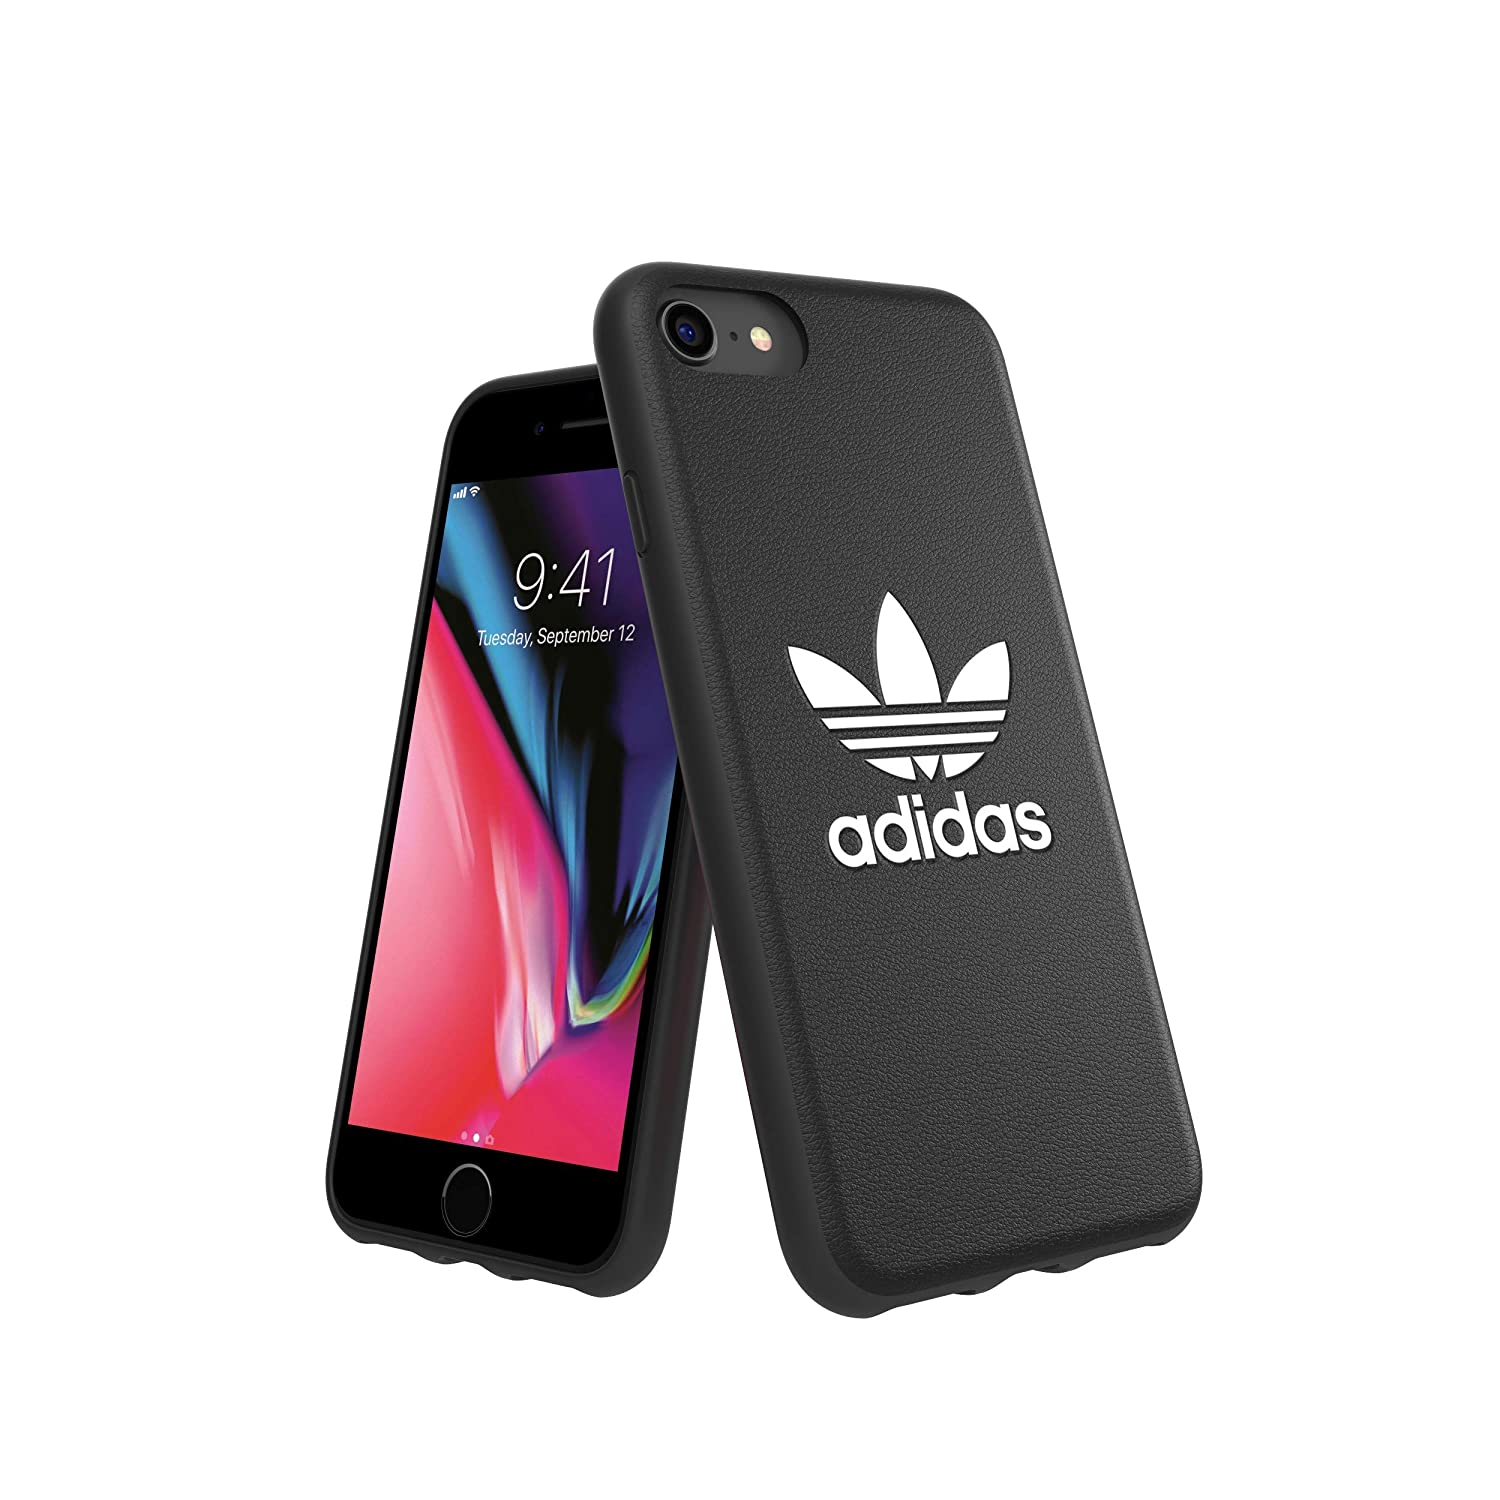 Carcasa ADIDAS Moulded Case Basic FW 18 Negro/Blanco Compatible con iPhone 6/6S/7/8